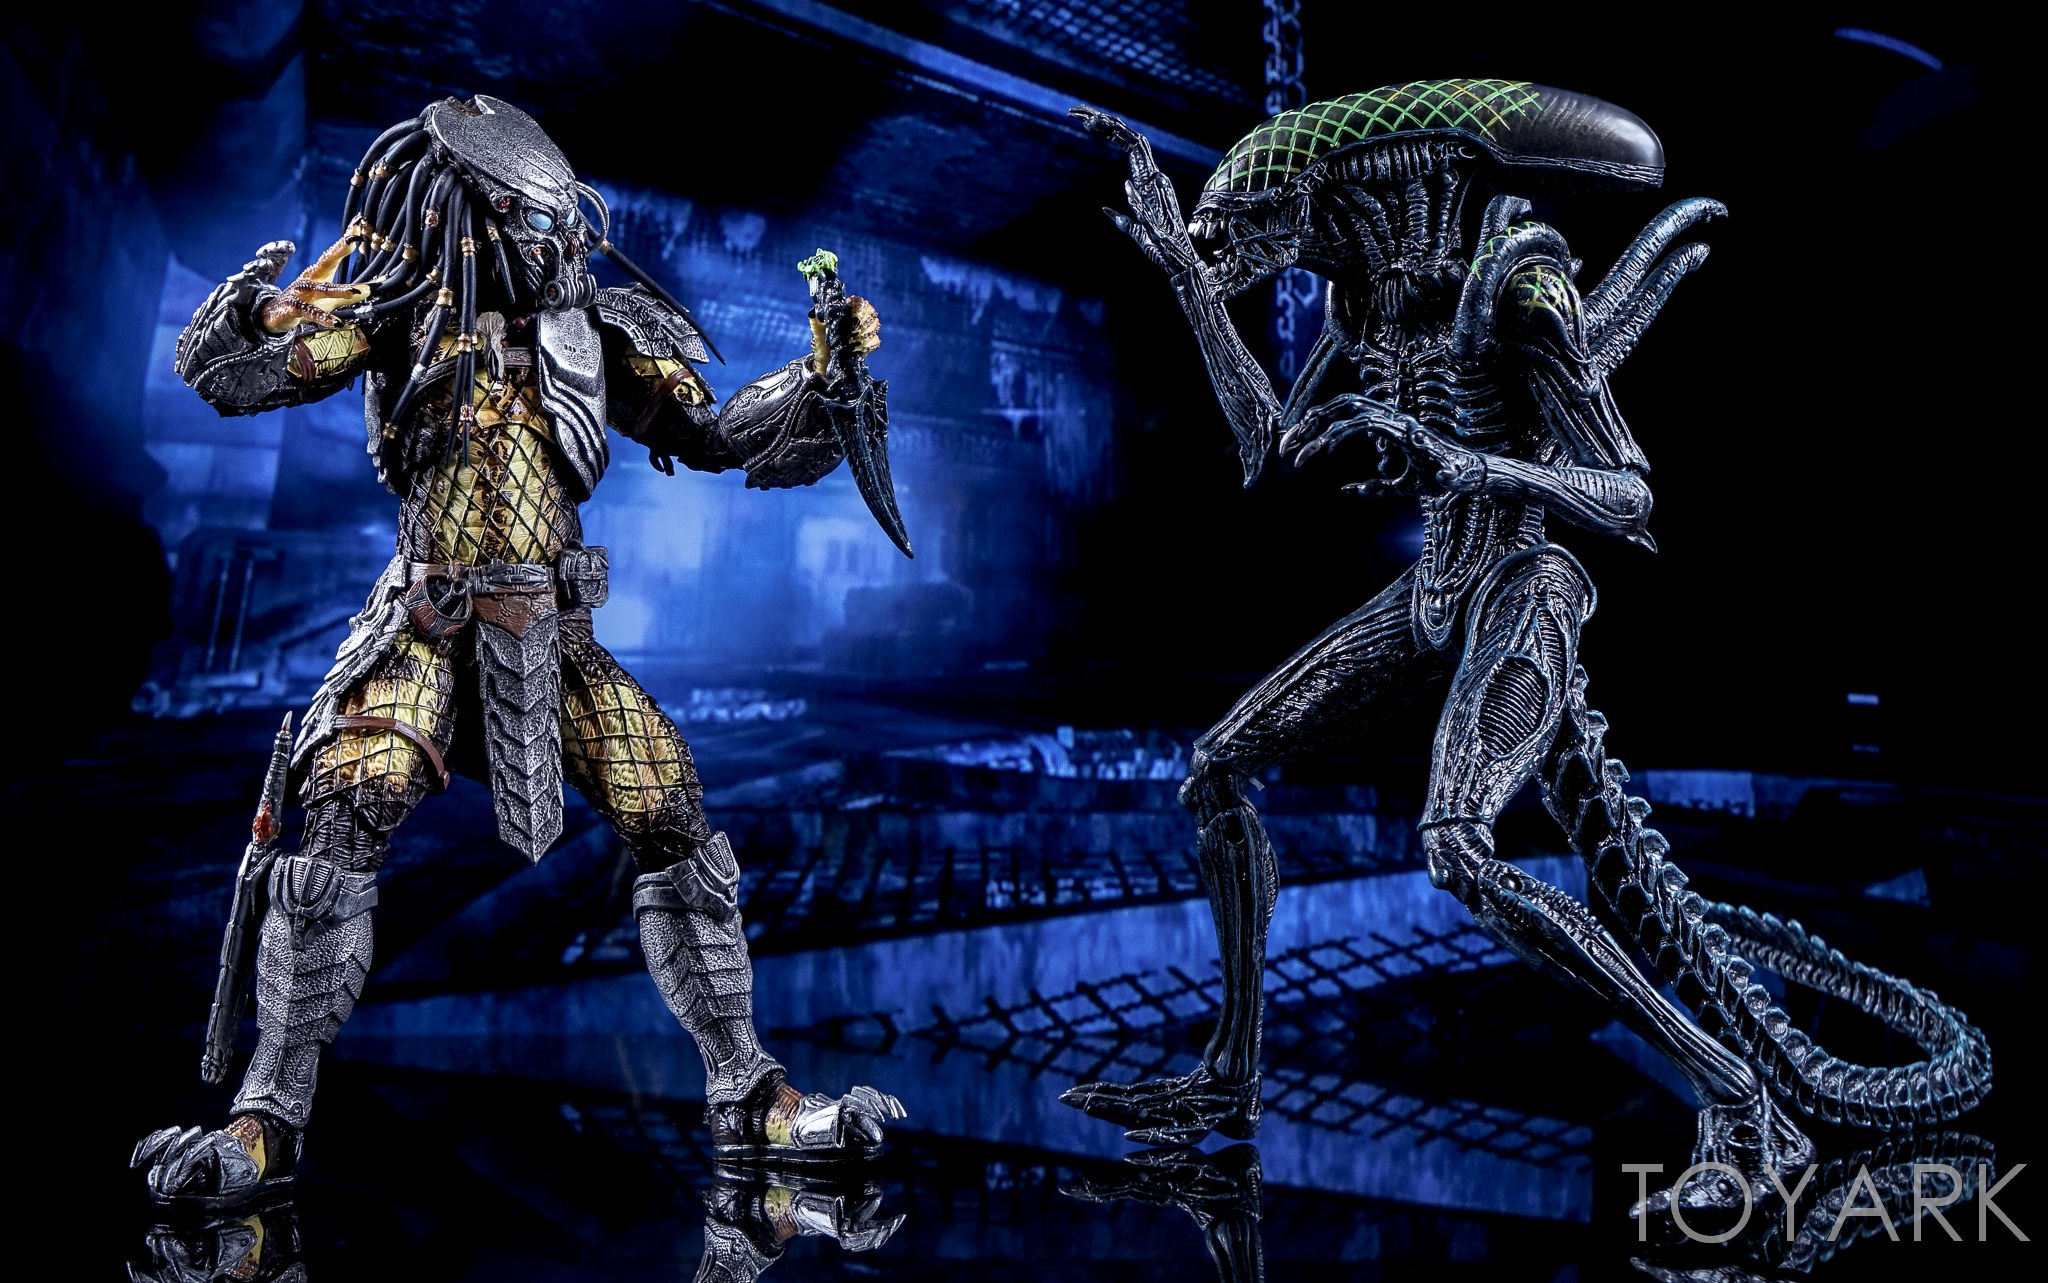 http://news.toyark.com/wp-content/uploads/sites/4/2016/10/NECA-AvP-Rivalry-Reborn-Set-055.jpg